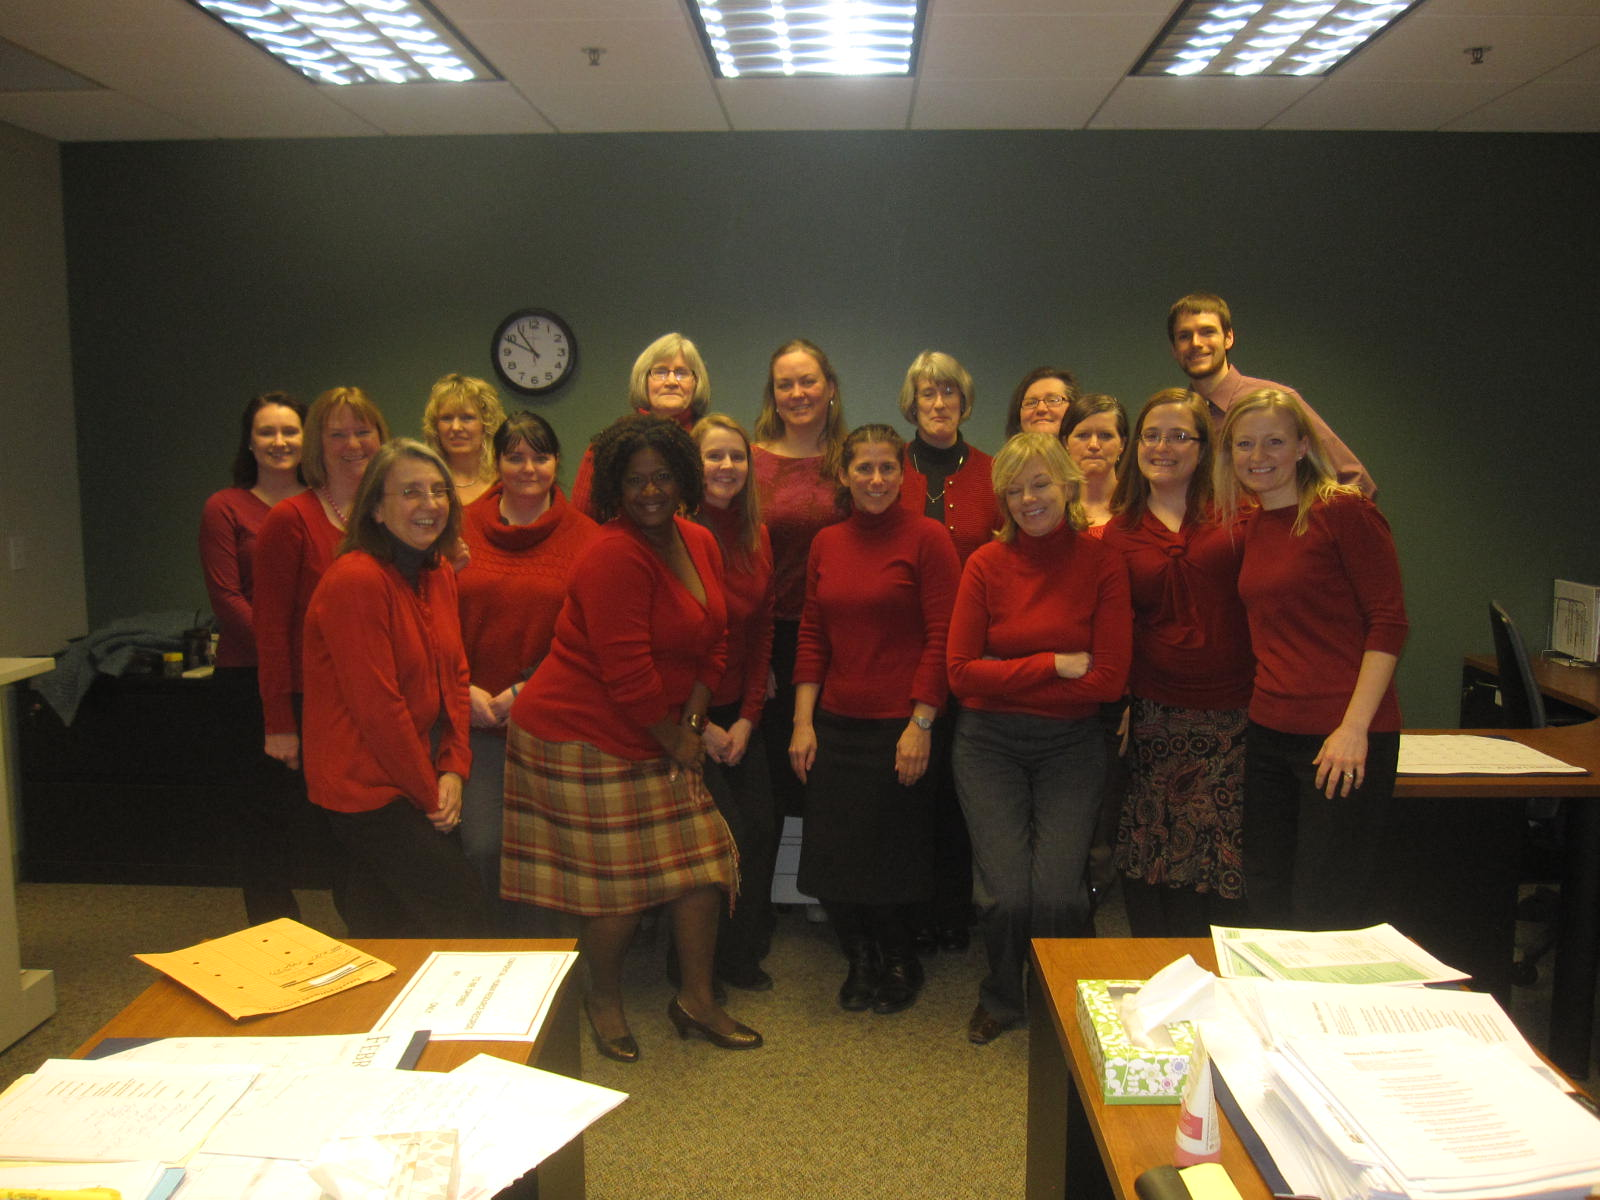 HR wearing red on 2/7/2014